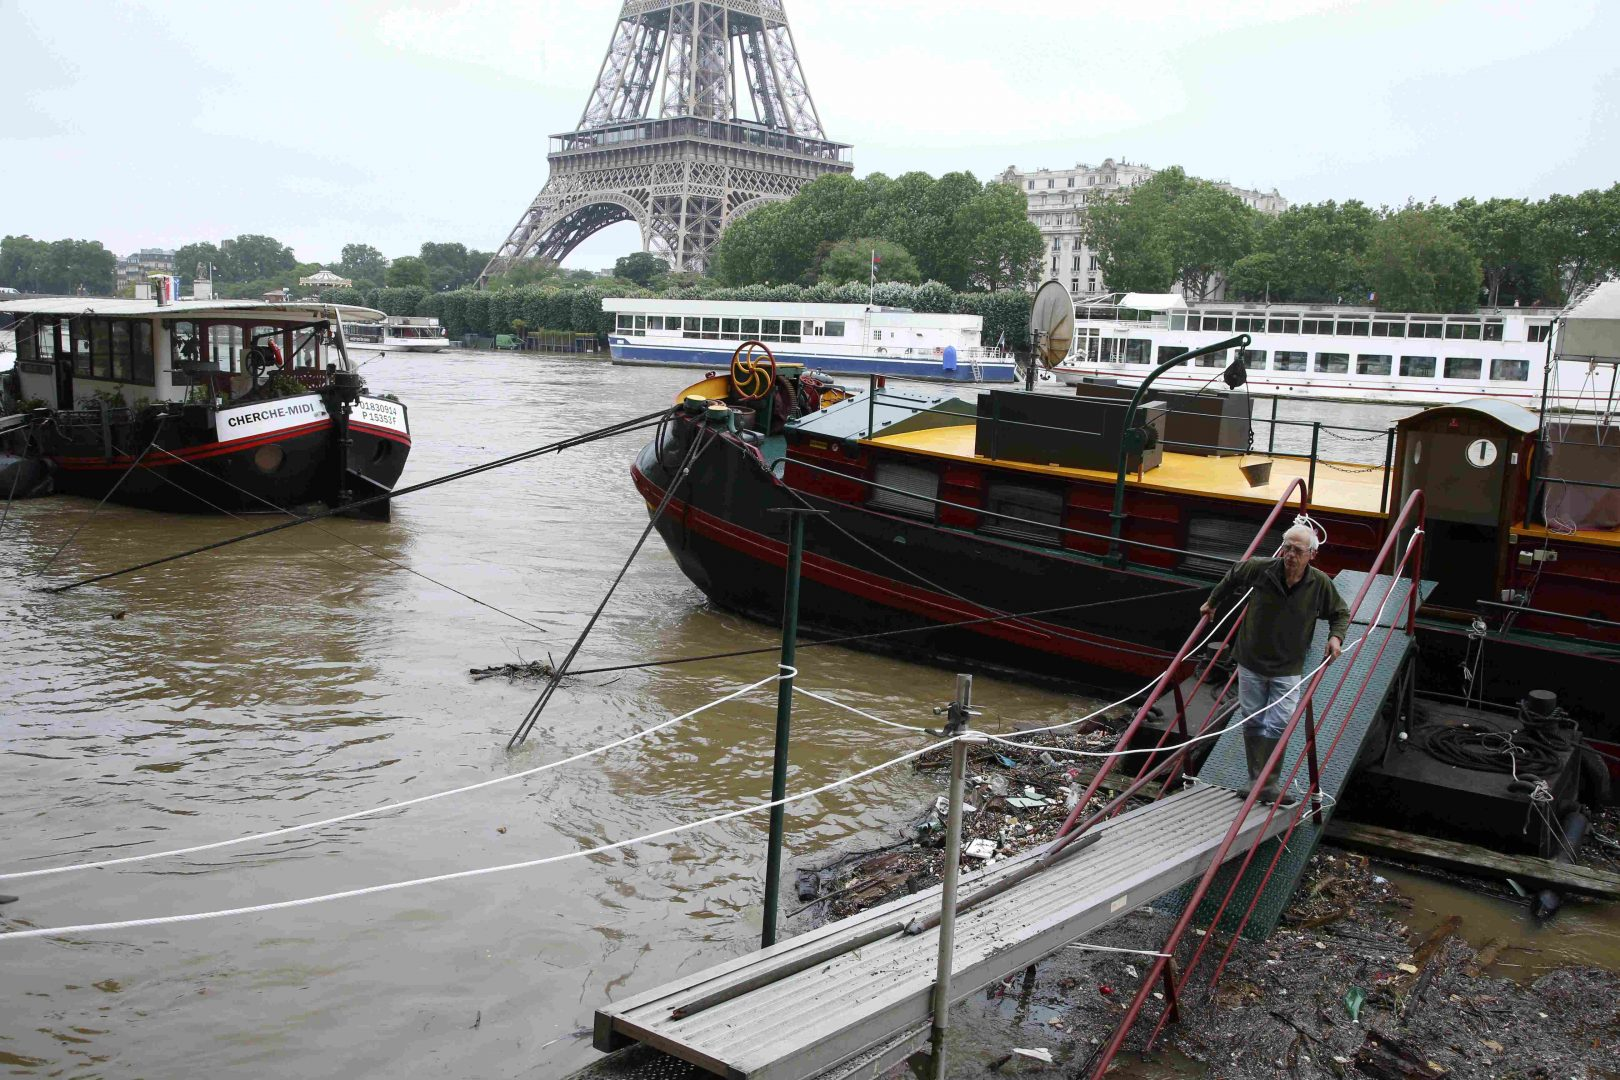 A man uses a footbridge as he leaves his houseboat moored near the Eiffel tower during flooding on the banks of the Seine River in Paris, France, after days of almost non-stop rain caused flooding in the country, June 2, 2016. REUTERS/Pascal Rossignol